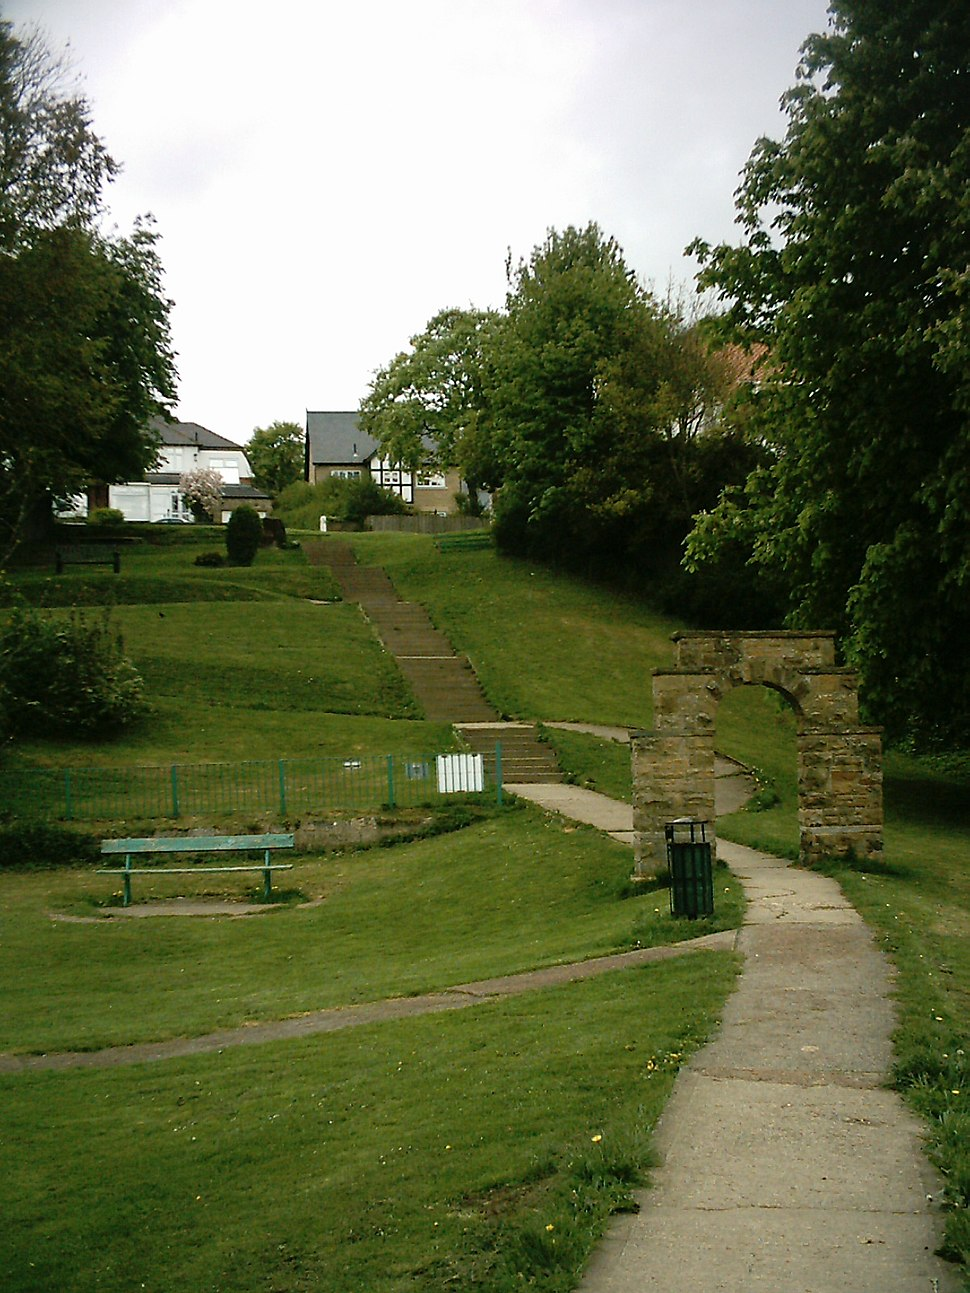 Access to King Georges field